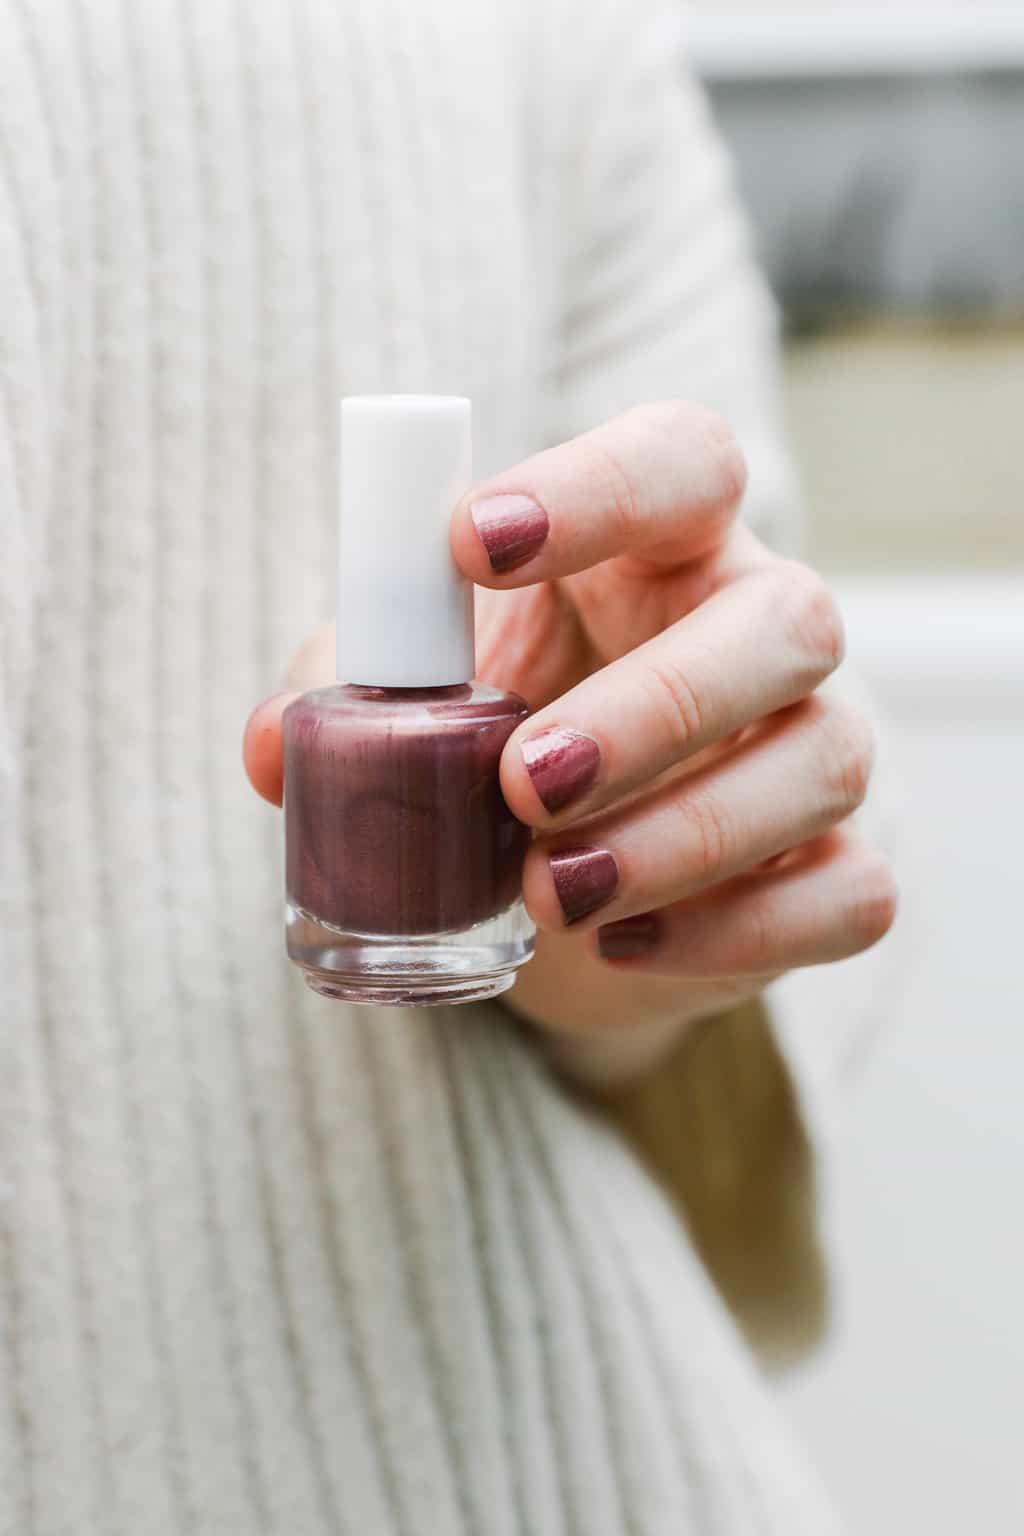 Everything You Need For An At-Home Manicure